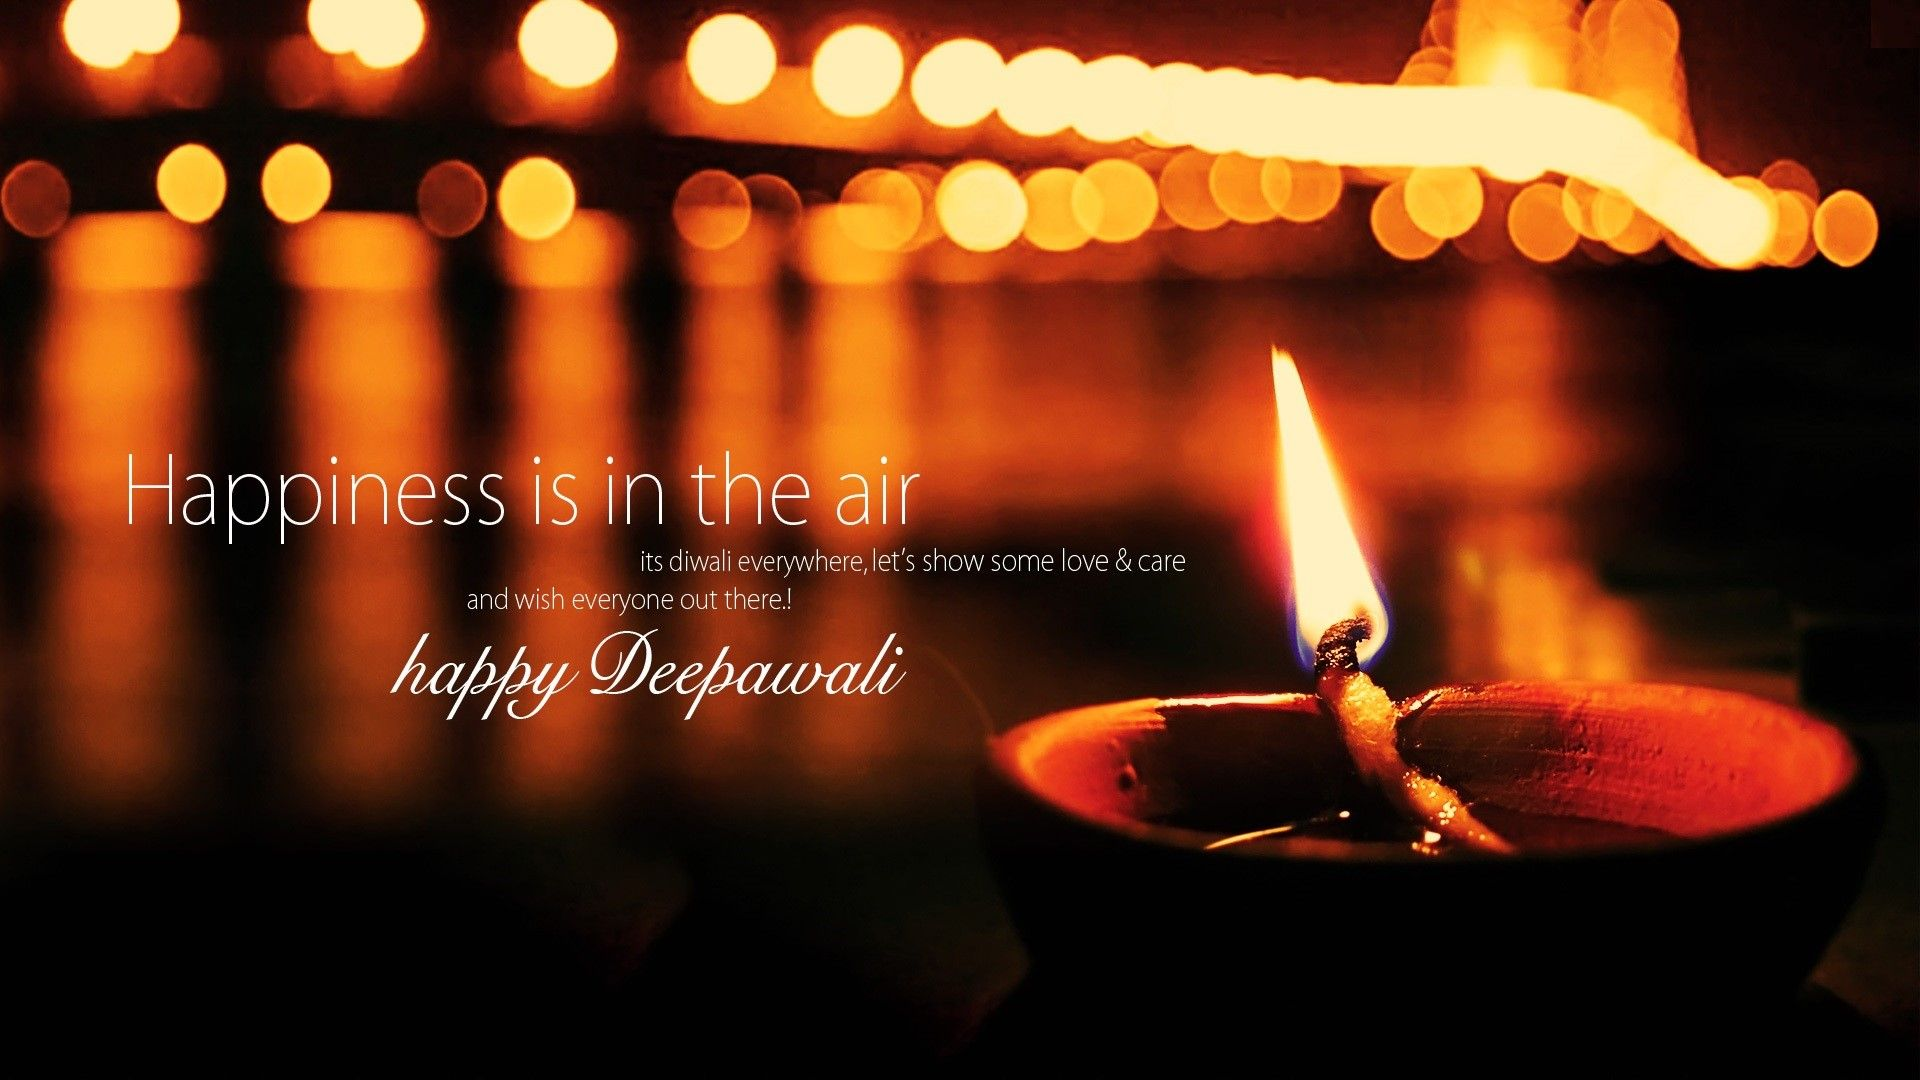 Happy diwali 2015 download latest wallpapers and greeting cards free happy diwali 2015 download latest wallpapers and greeting cards free httpwww kristyandbryce Images